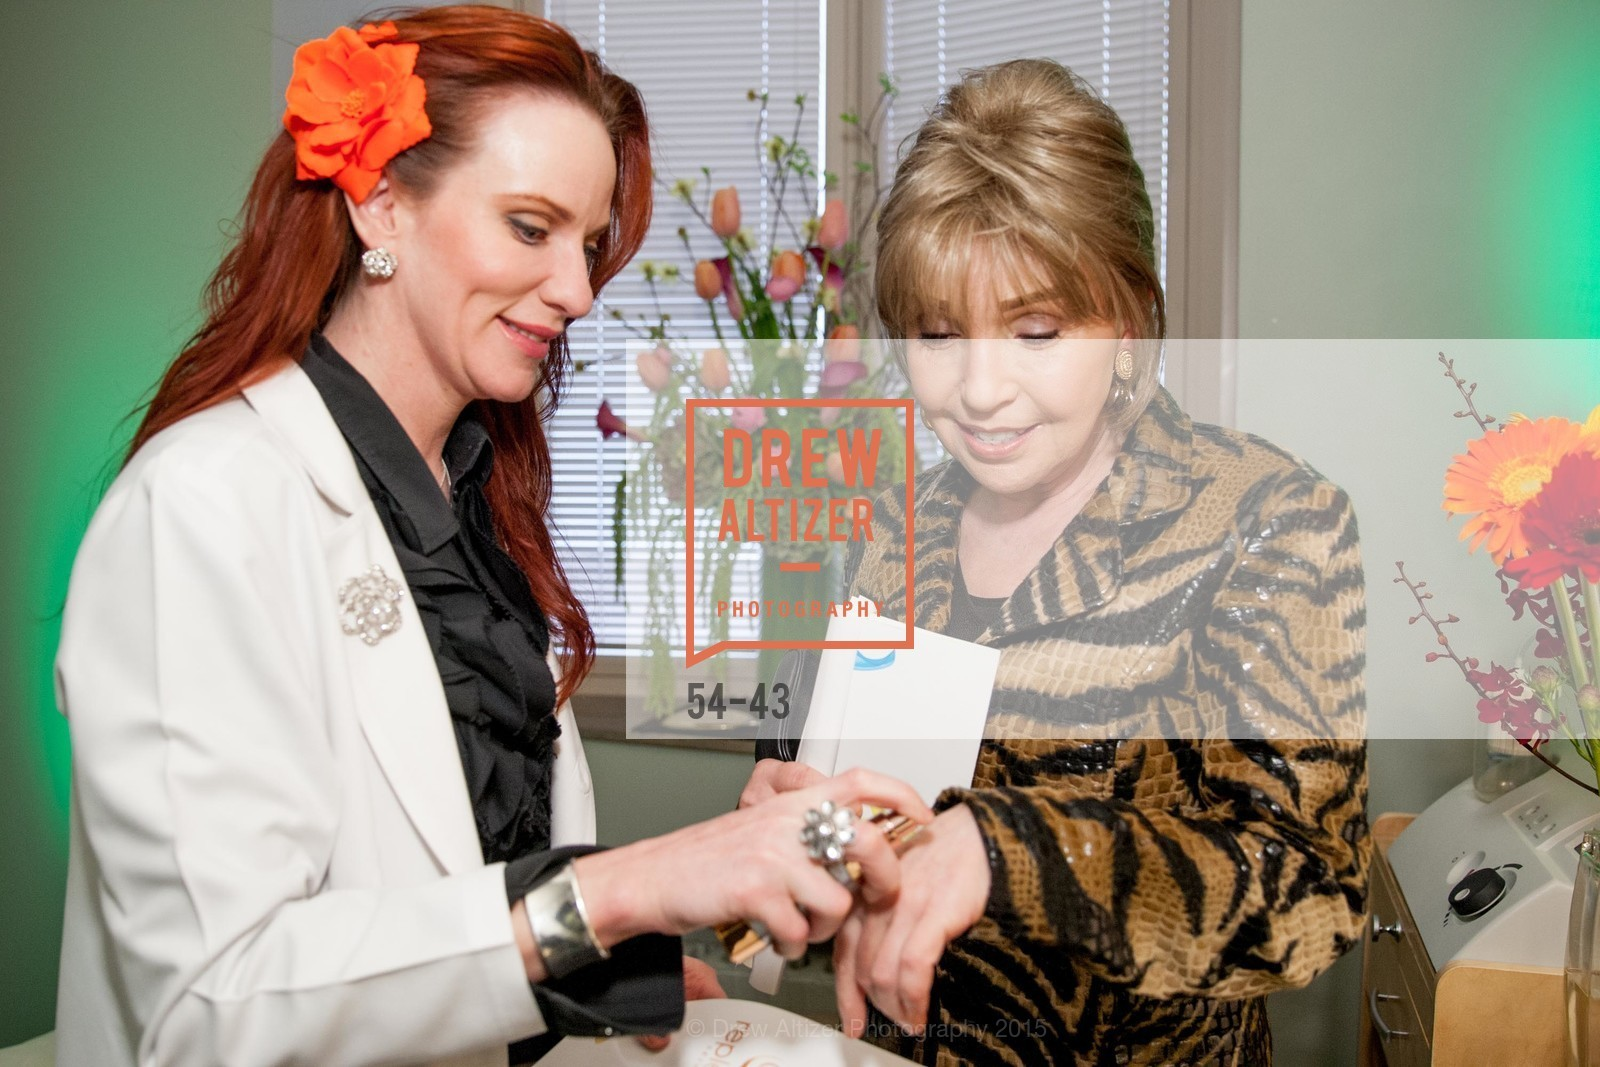 Kelly Forante, Terry Forestieri, EPI CENTER MedSpa Anniversary and Launch of REPLETE, Epi Center MedSpa, April 21st, 2015,Drew Altizer, Drew Altizer Photography, full-service event agency, private events, San Francisco photographer, photographer California